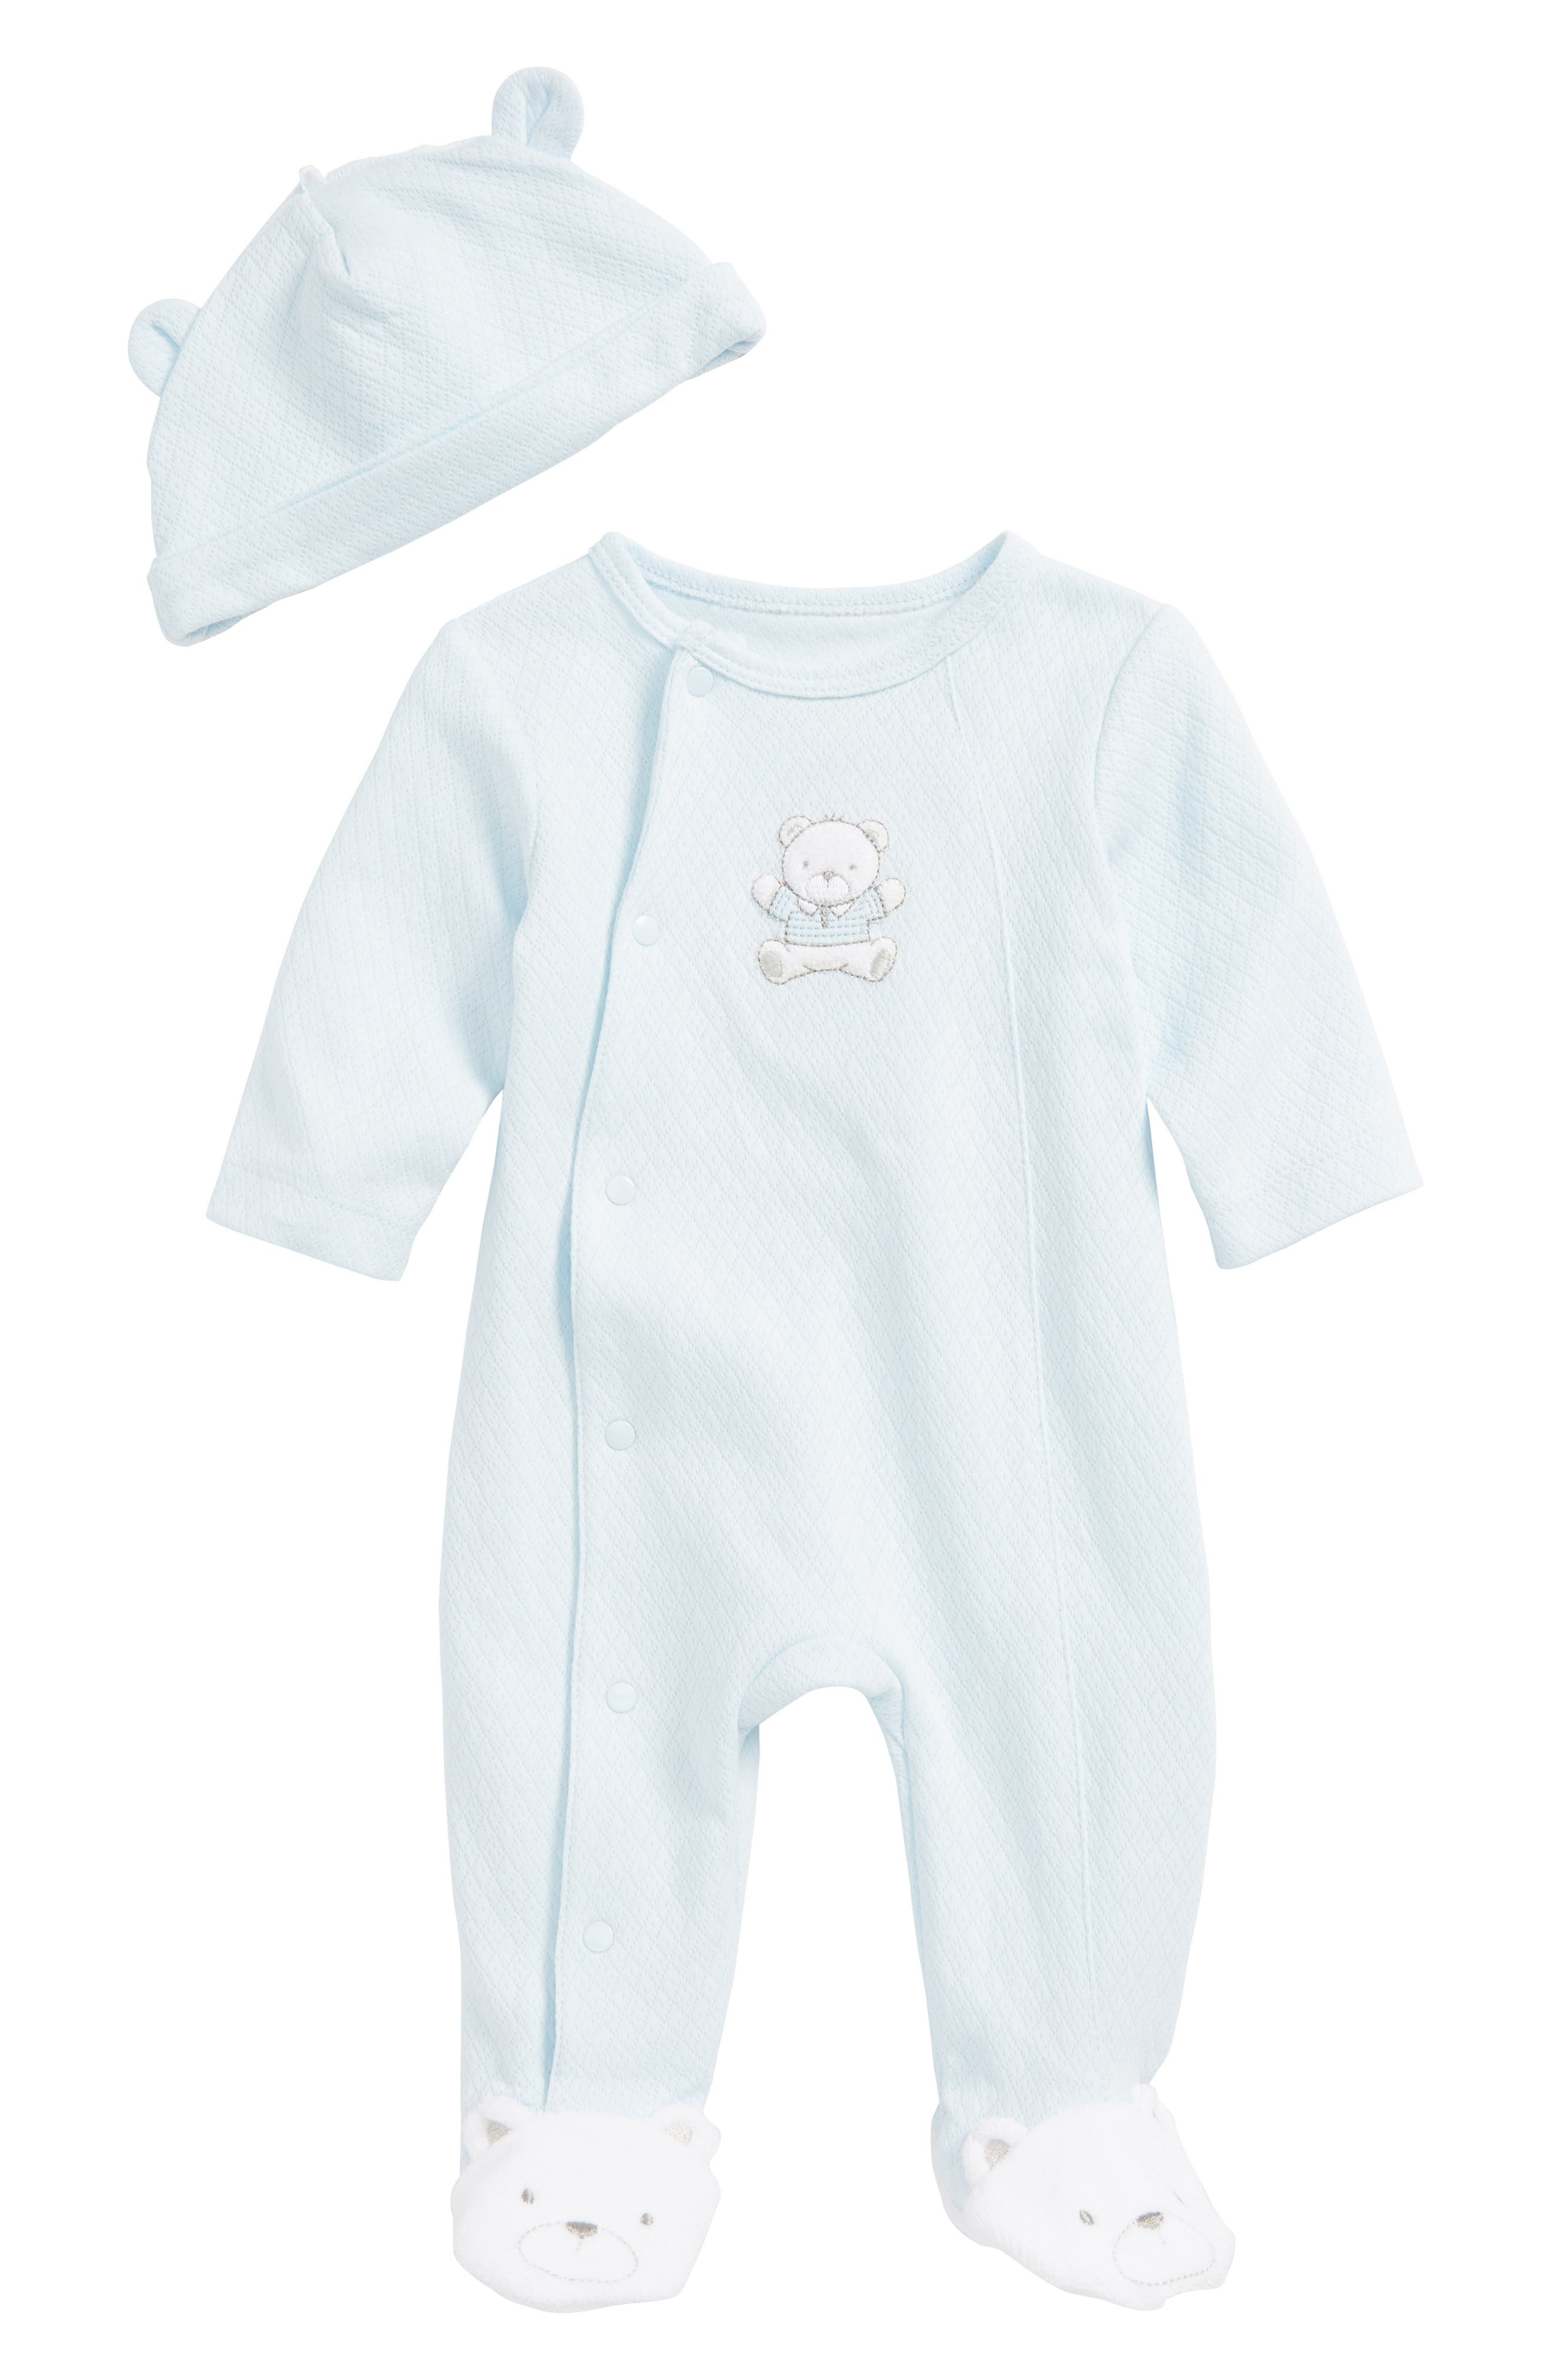 Little Me Baby Boys Velour Pattern Footie coCAPYtG